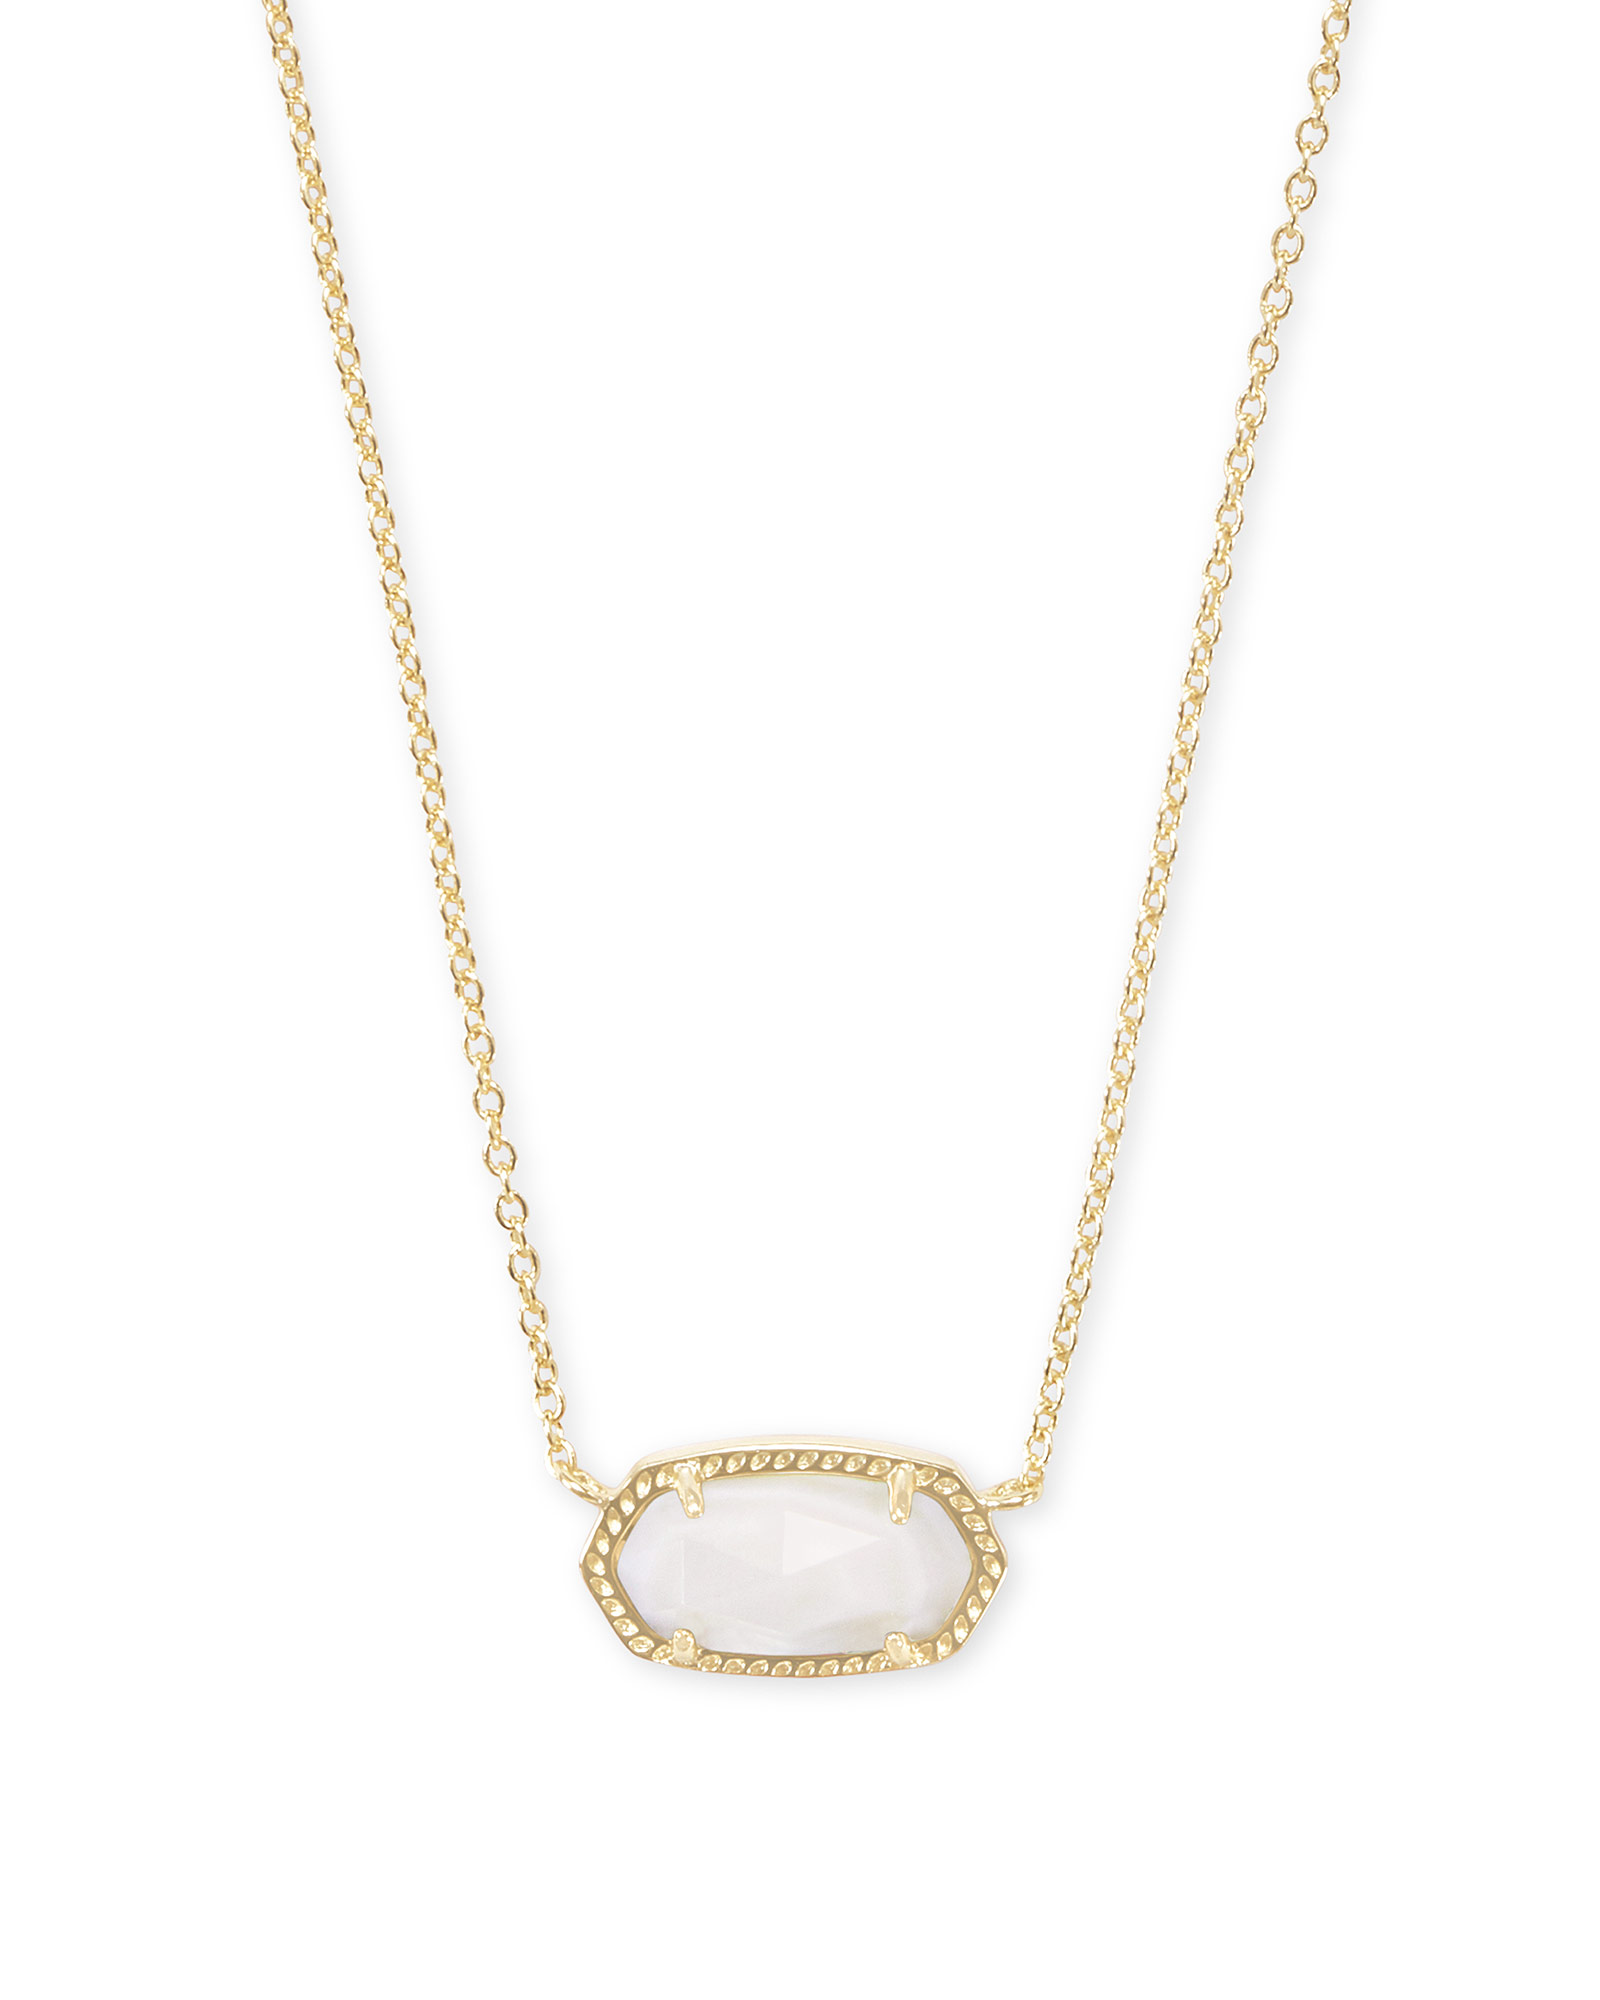 2de0bf37c42a3 Elisa Gold Pendant Necklace in White Mother-of-Pearl | Kendra Scott